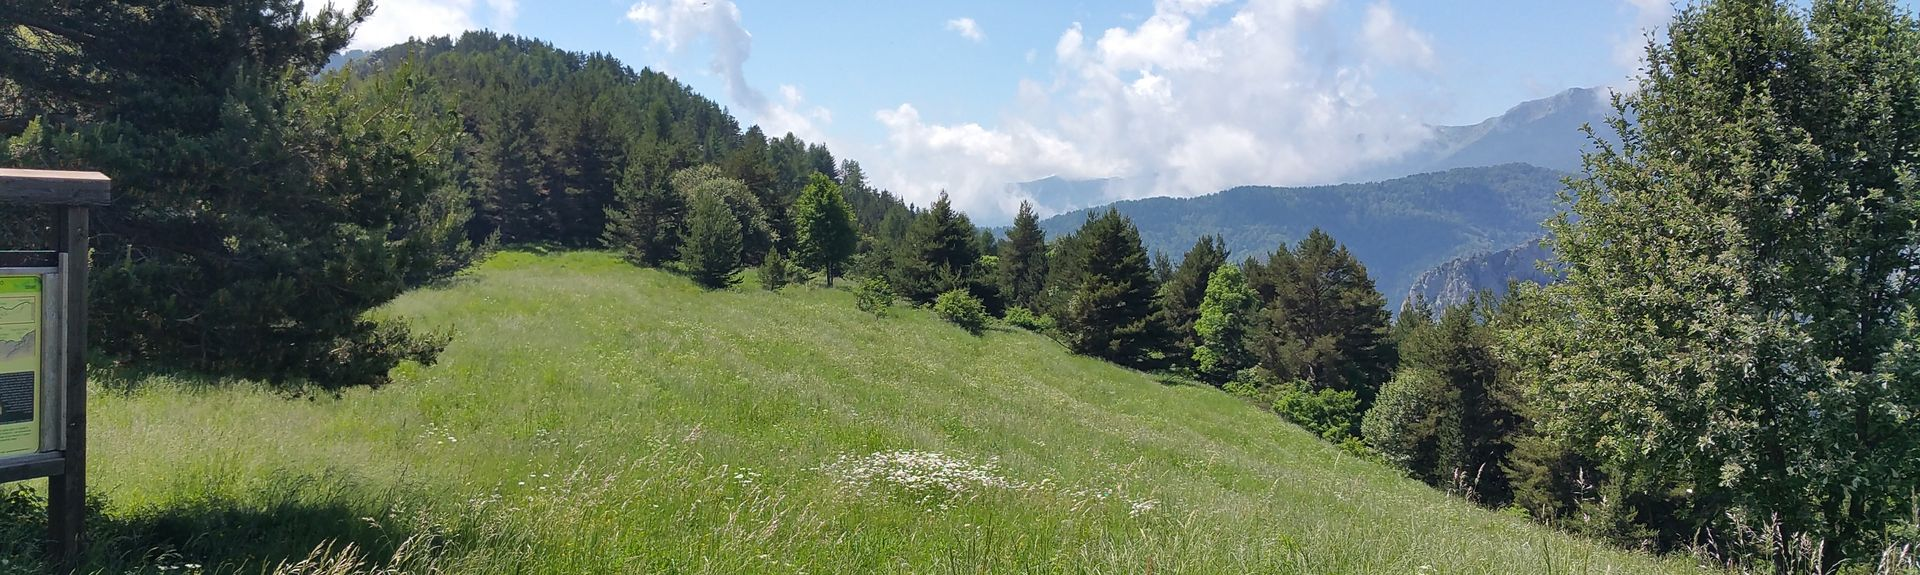 Pamparato, Cuneo, Piedmont, Italy